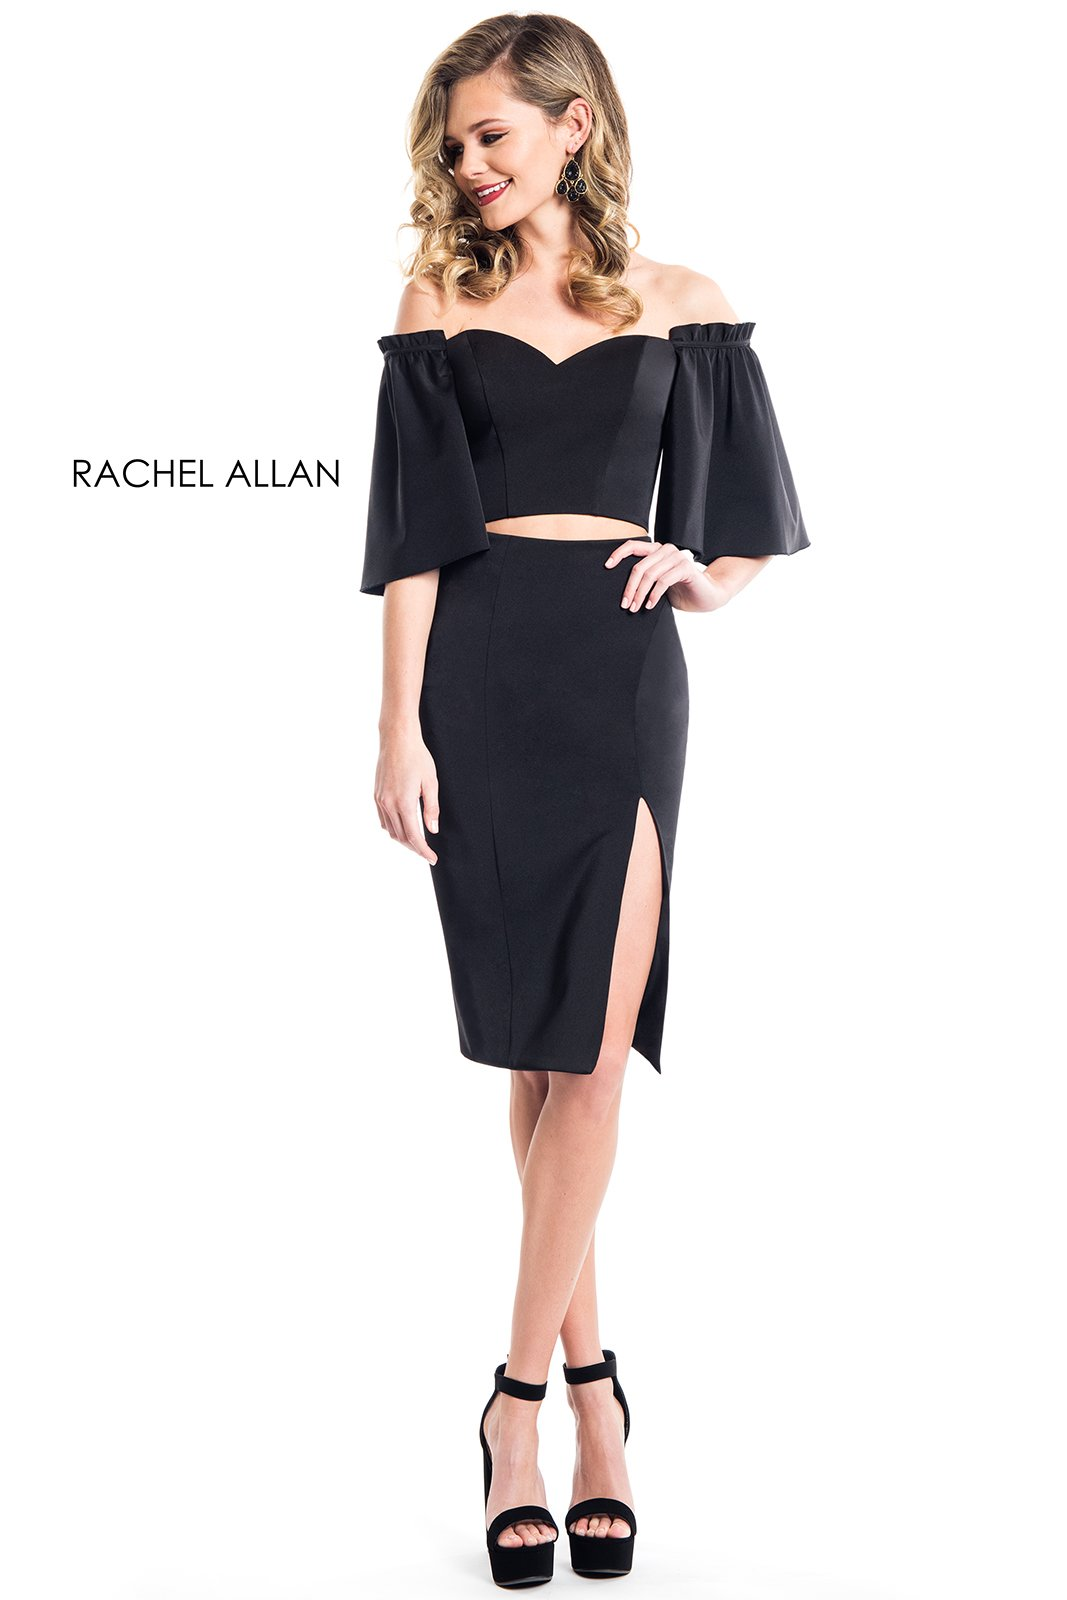 Sweetheart Two-Piece Cocktail Dresses in Black Color